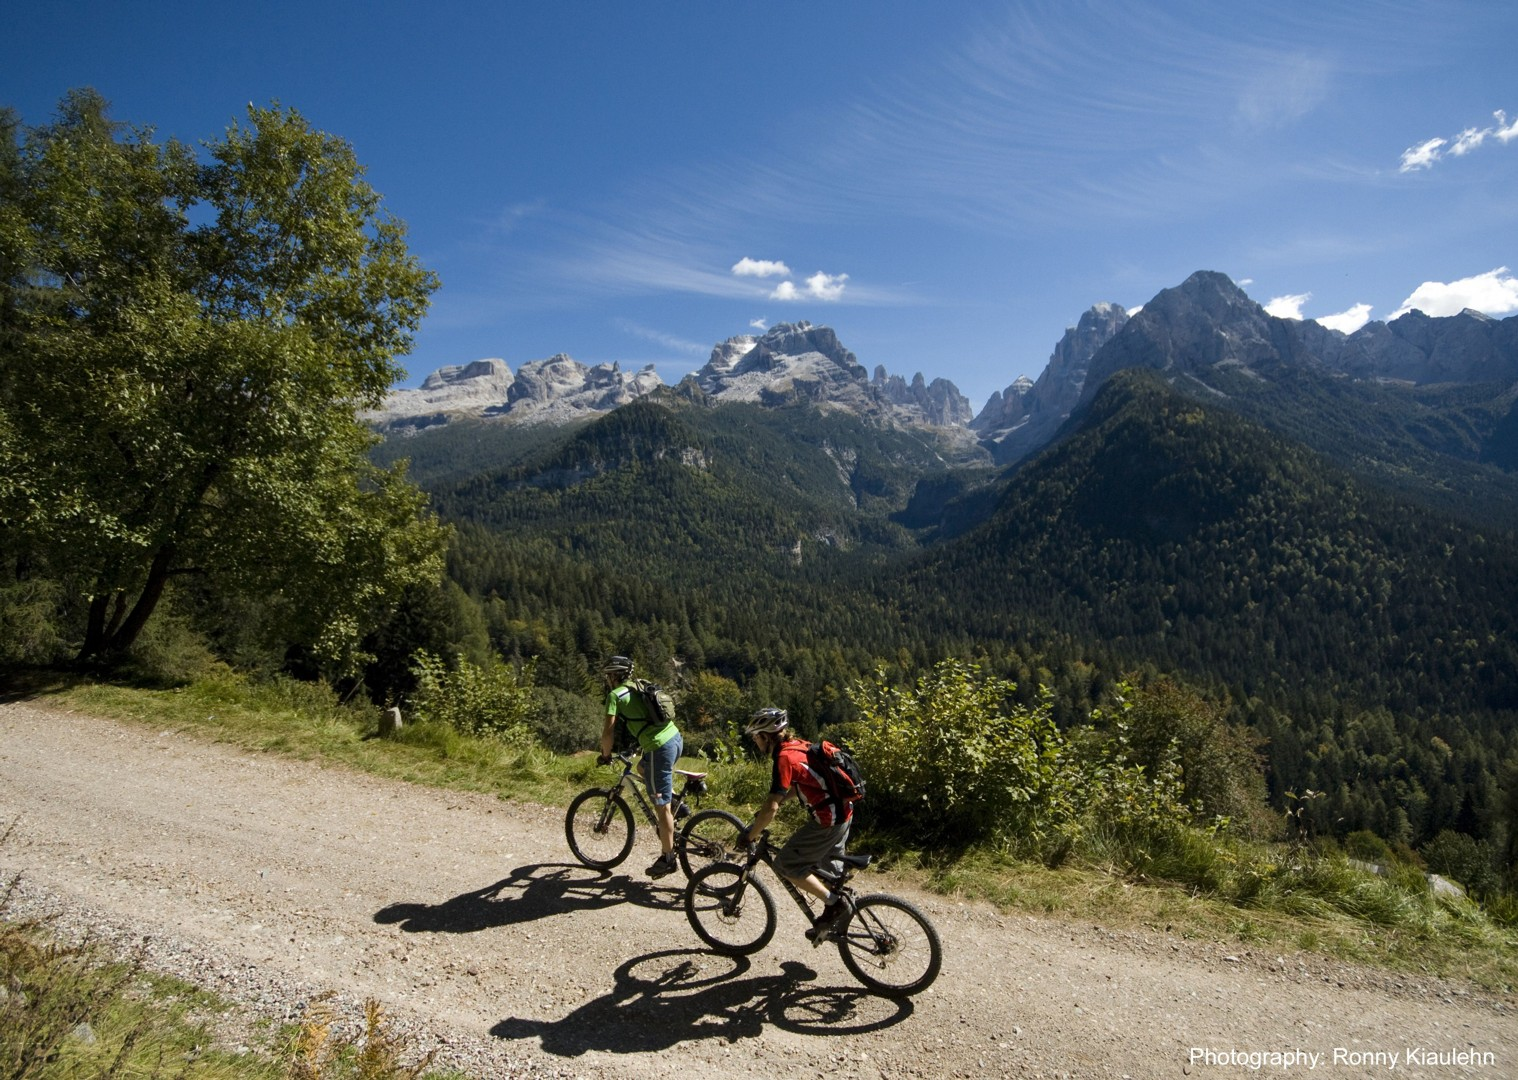 dolomites2.jpg - Italy - Dolomites of Brenta - Guided Mountain Bike Holiday - Italia Mountain Biking